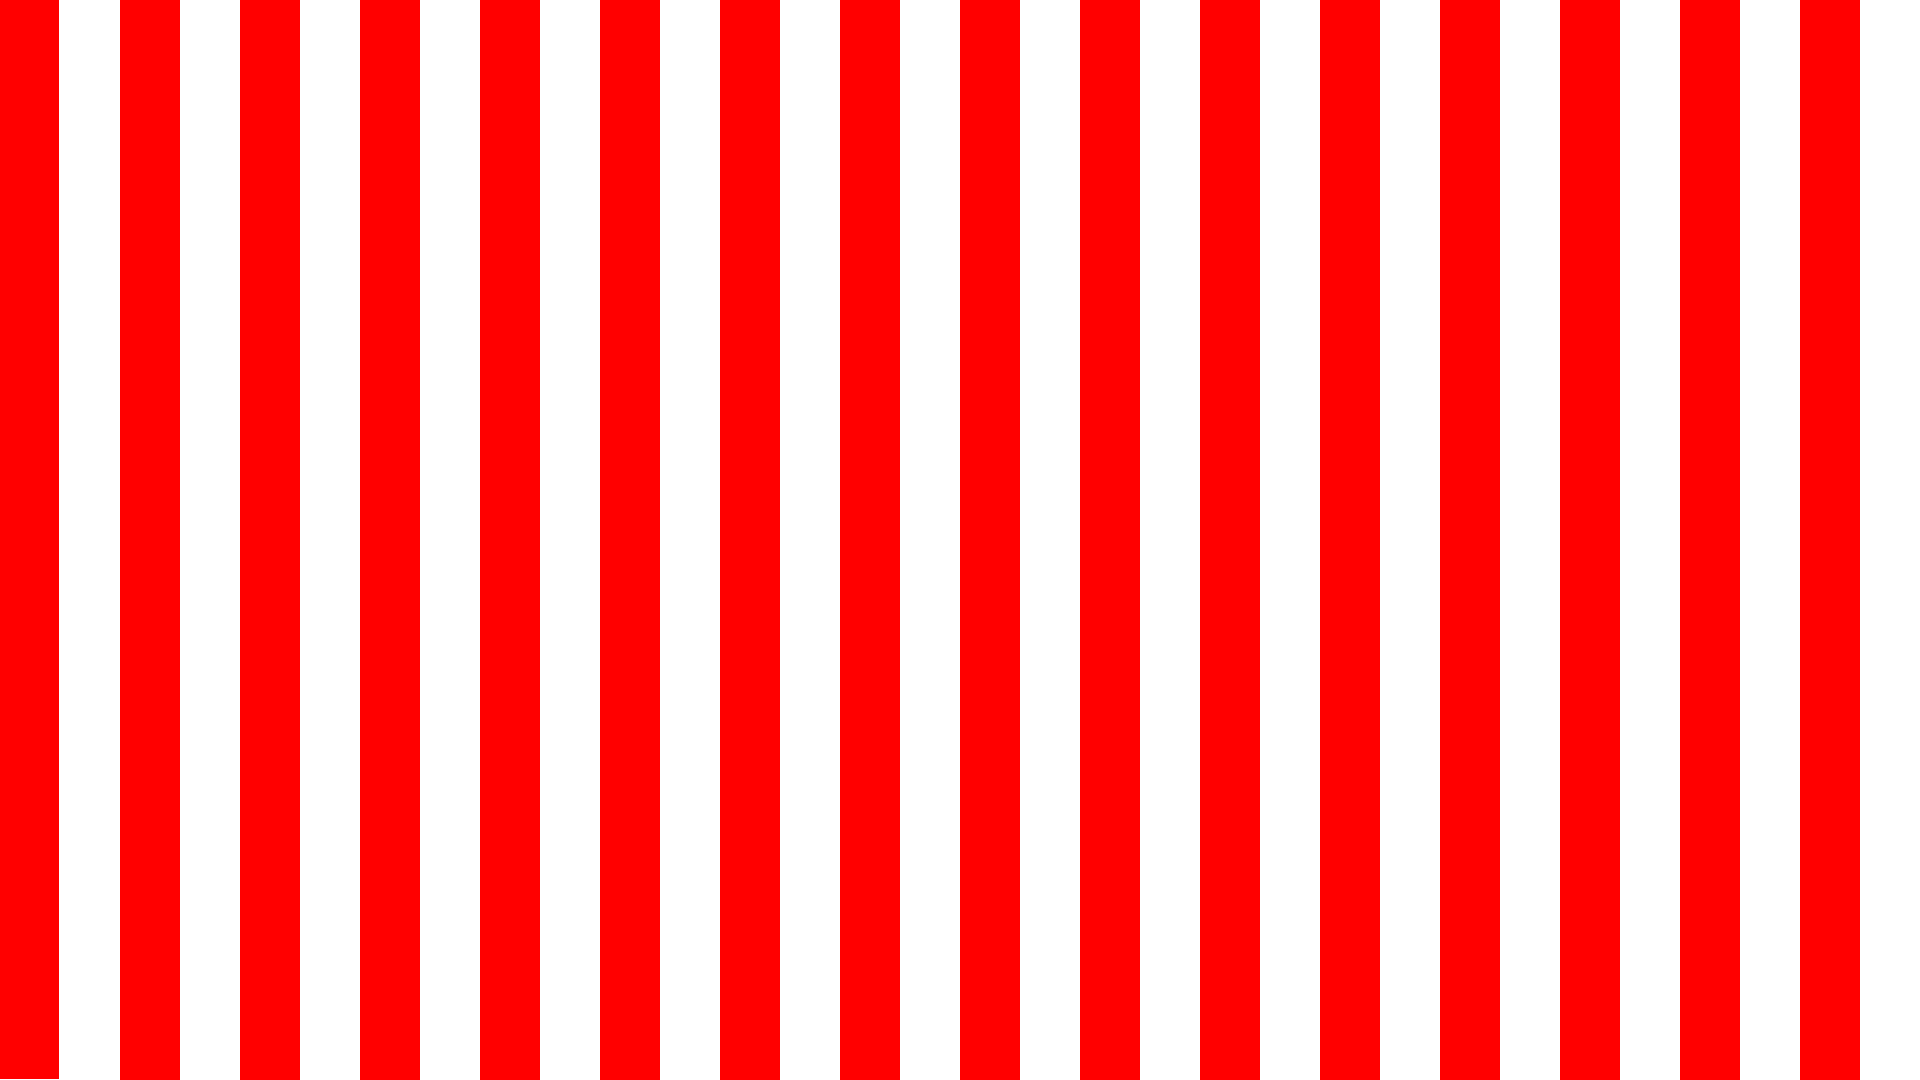 1920x1080 template with 60-pixel-wide stripes